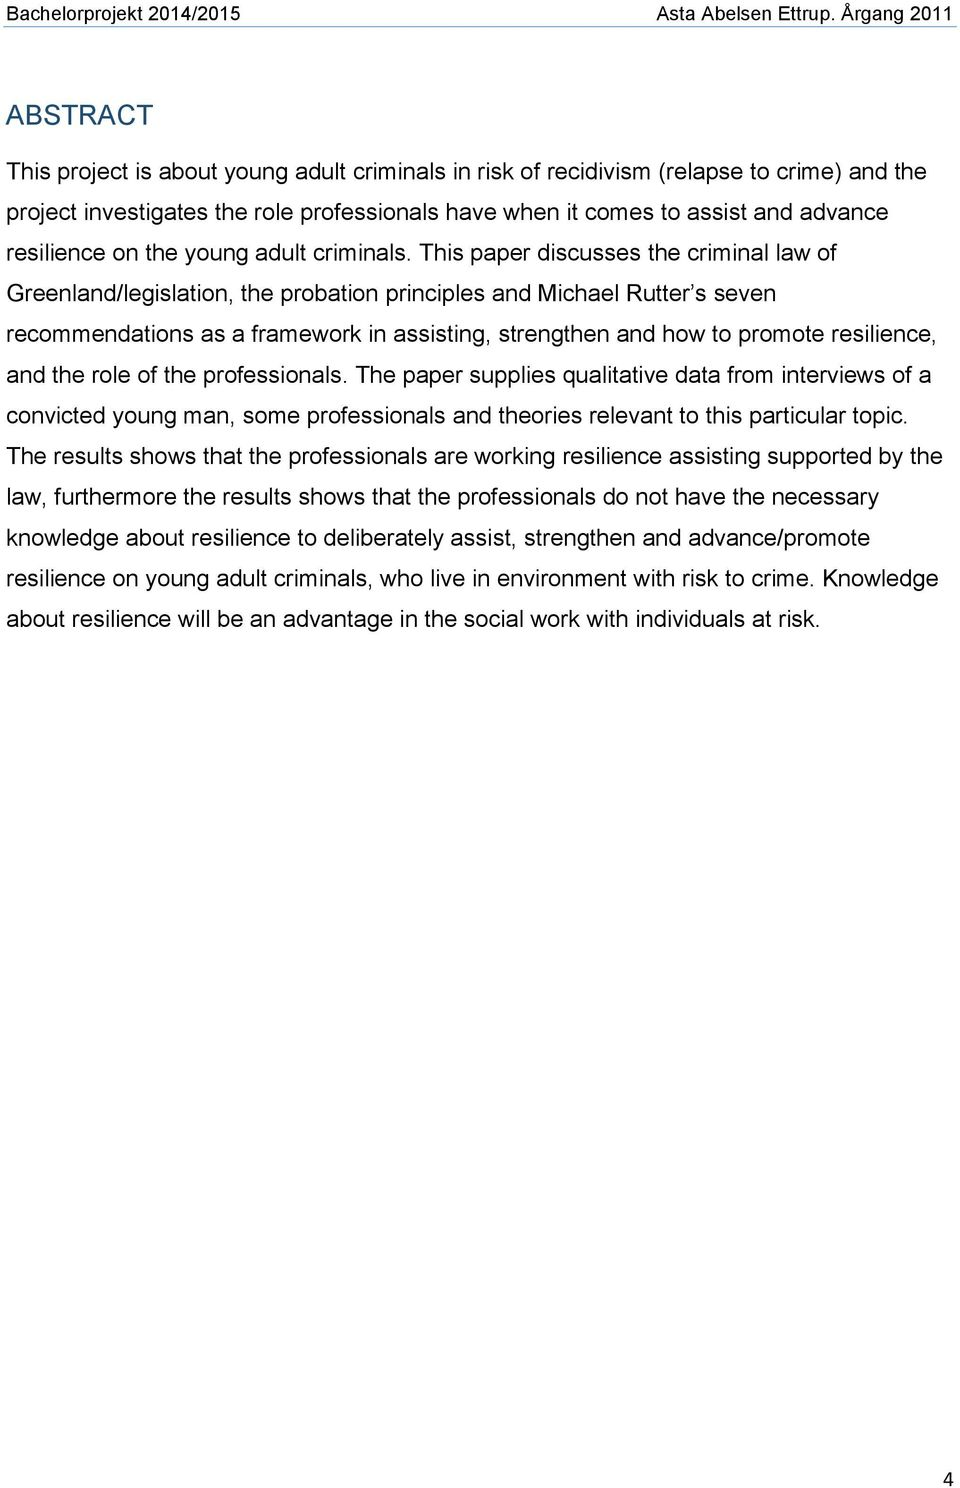 This paper discusses the criminal law of Greenland/legislation, the probation principles and Michael Rutter s seven recommendations as a framework in assisting, strengthen and how to promote